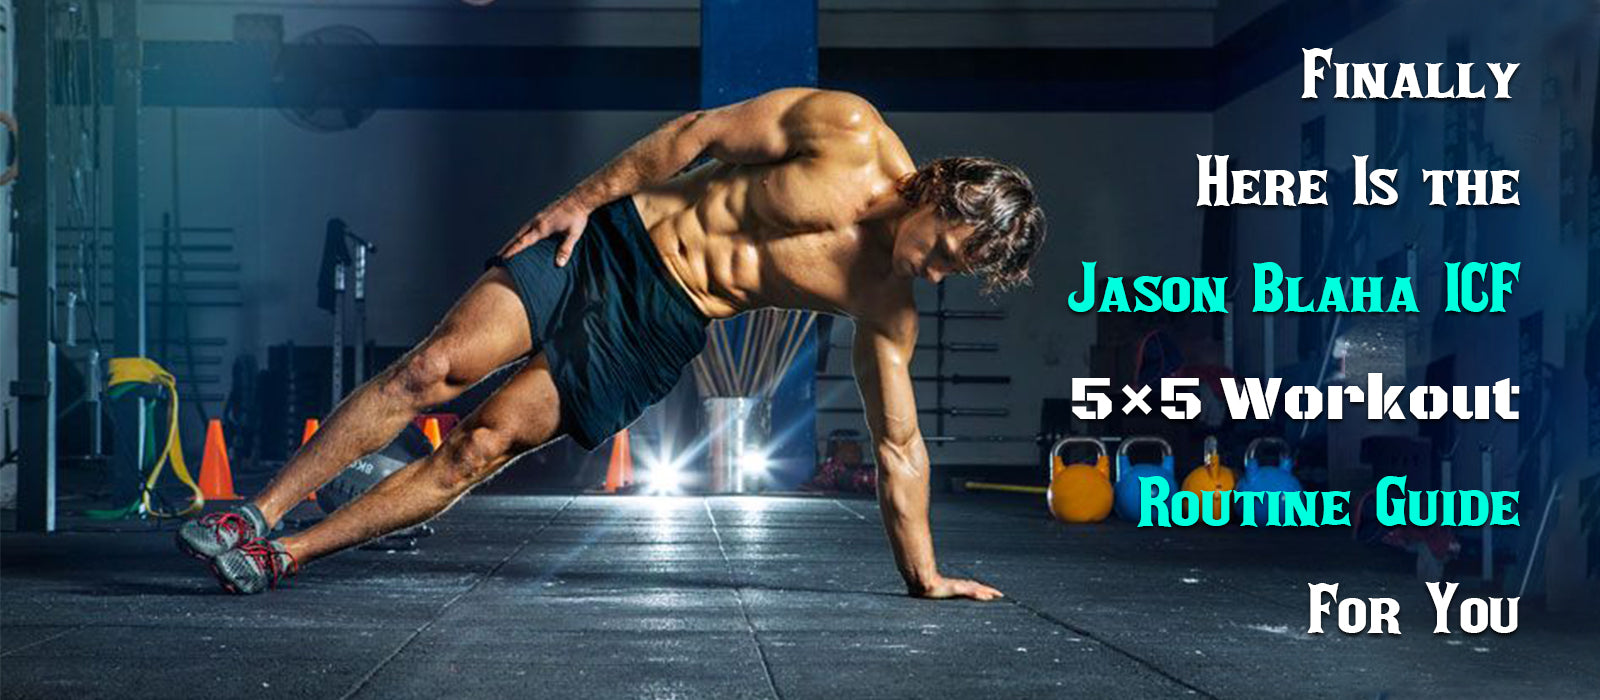 Finally Here Is the Jason Blaha ICF 5×5 Workout Routine Guide For You